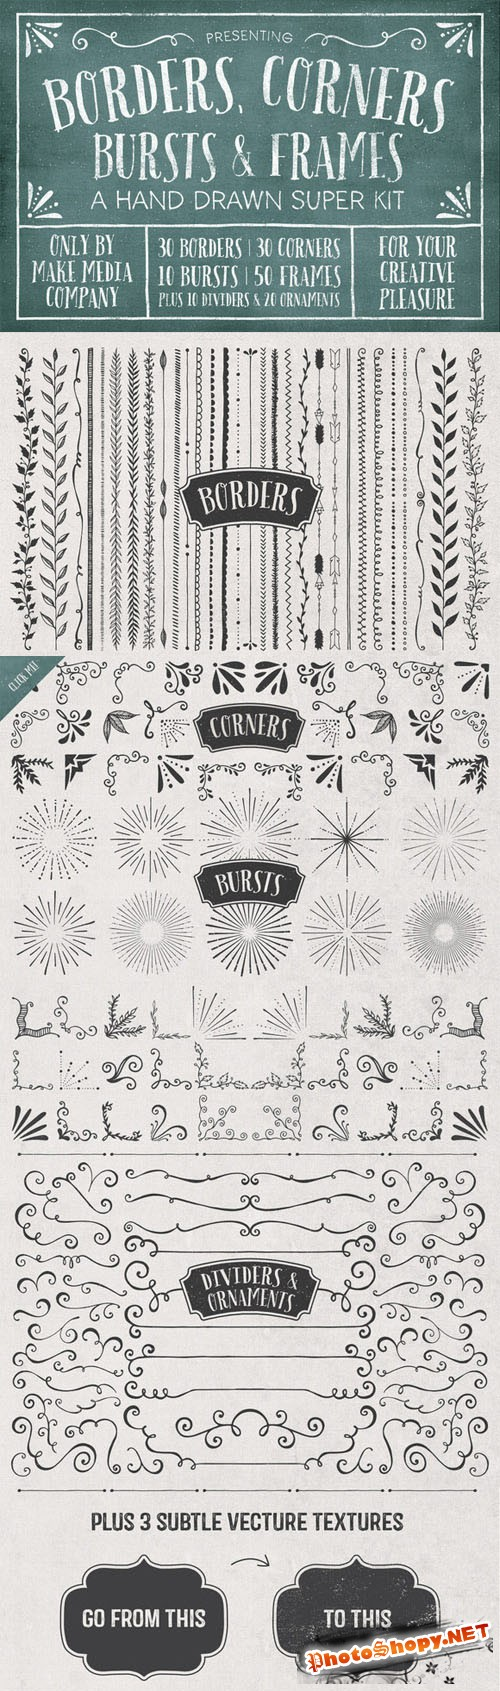 Creativemarket - Borders, Corners & Frames Super Kit 57719